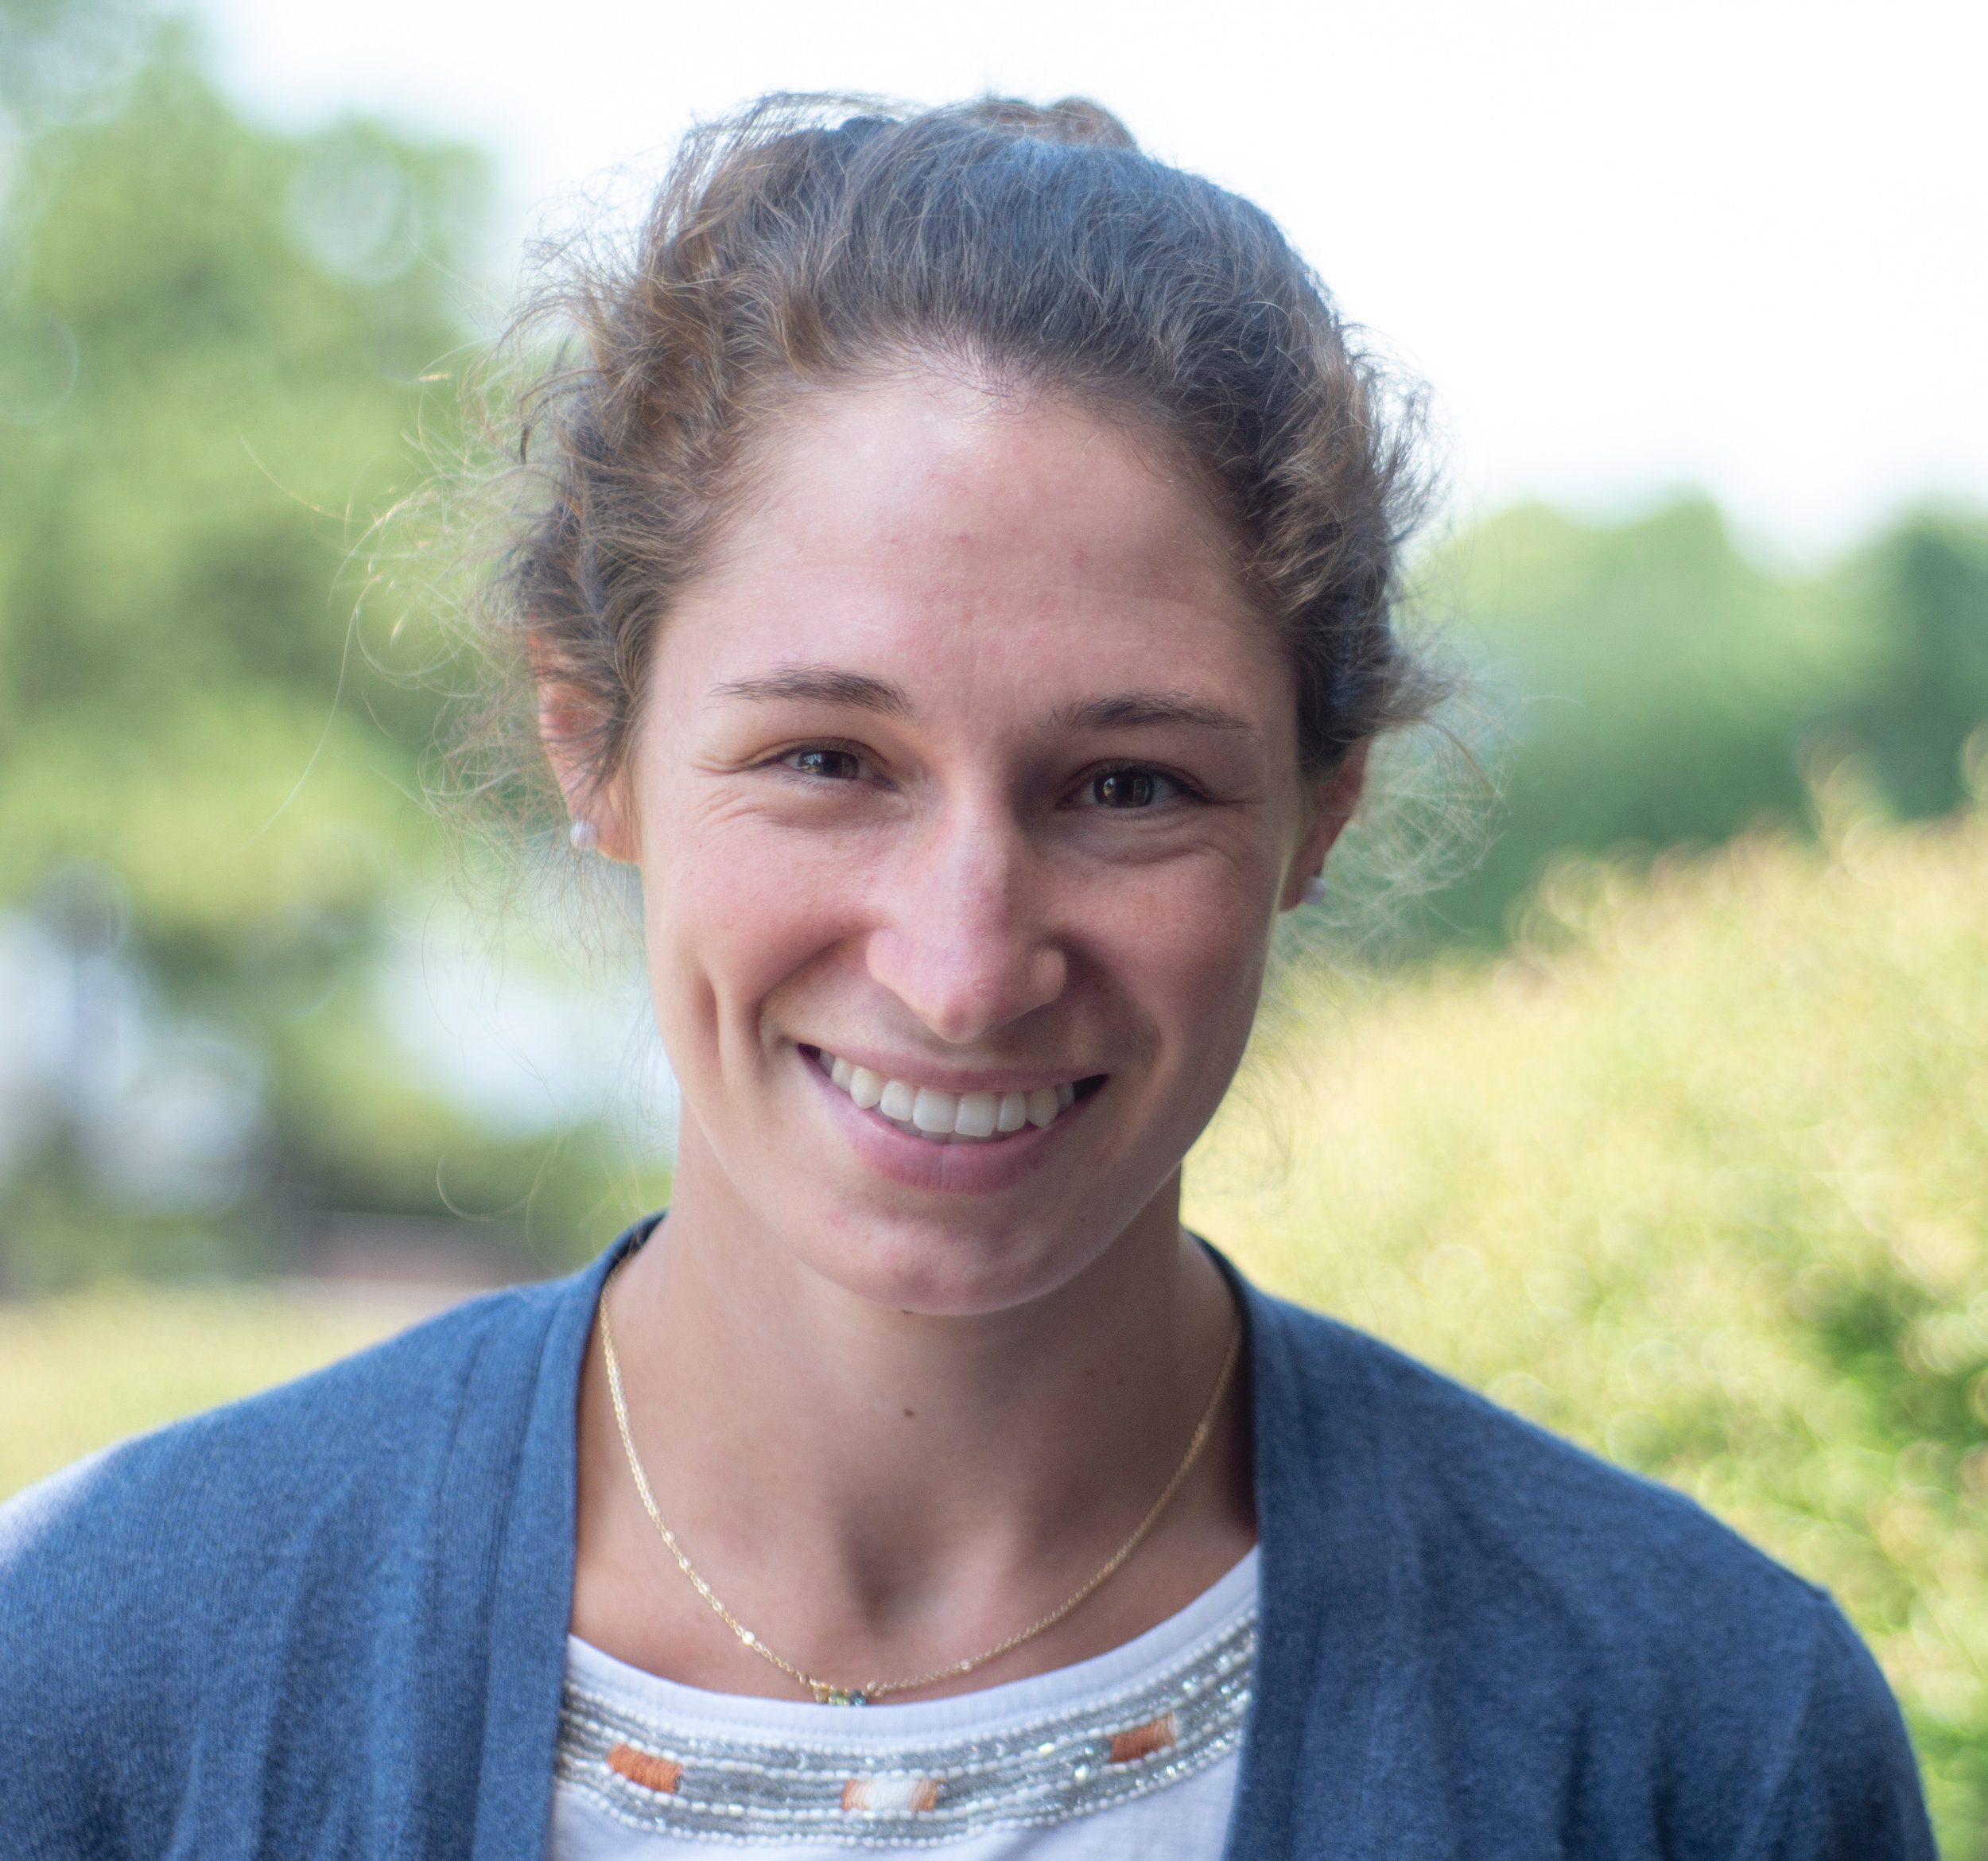 Ellie VanGemeren - Ellie has lived in Southern Pines for the last five years, originally moving here from Connecticut to train her horses. She graduated from Bates College in Maine with a BA in Psychology in 2013 and completed her AMI Primary Training at MATCE in Hartford, CT along with her Masters in Education through the University of Hartford in 2017. Ellie attended a Montessori school through the 6th grade and truly values and believes in the philosophy and education model. She is so excited to see Montessori finally coming to Moore County and is humbled to be a member of the staff this year. Ellie lives nearby with her horses, chickens and dog and spends as much time outside as possible!